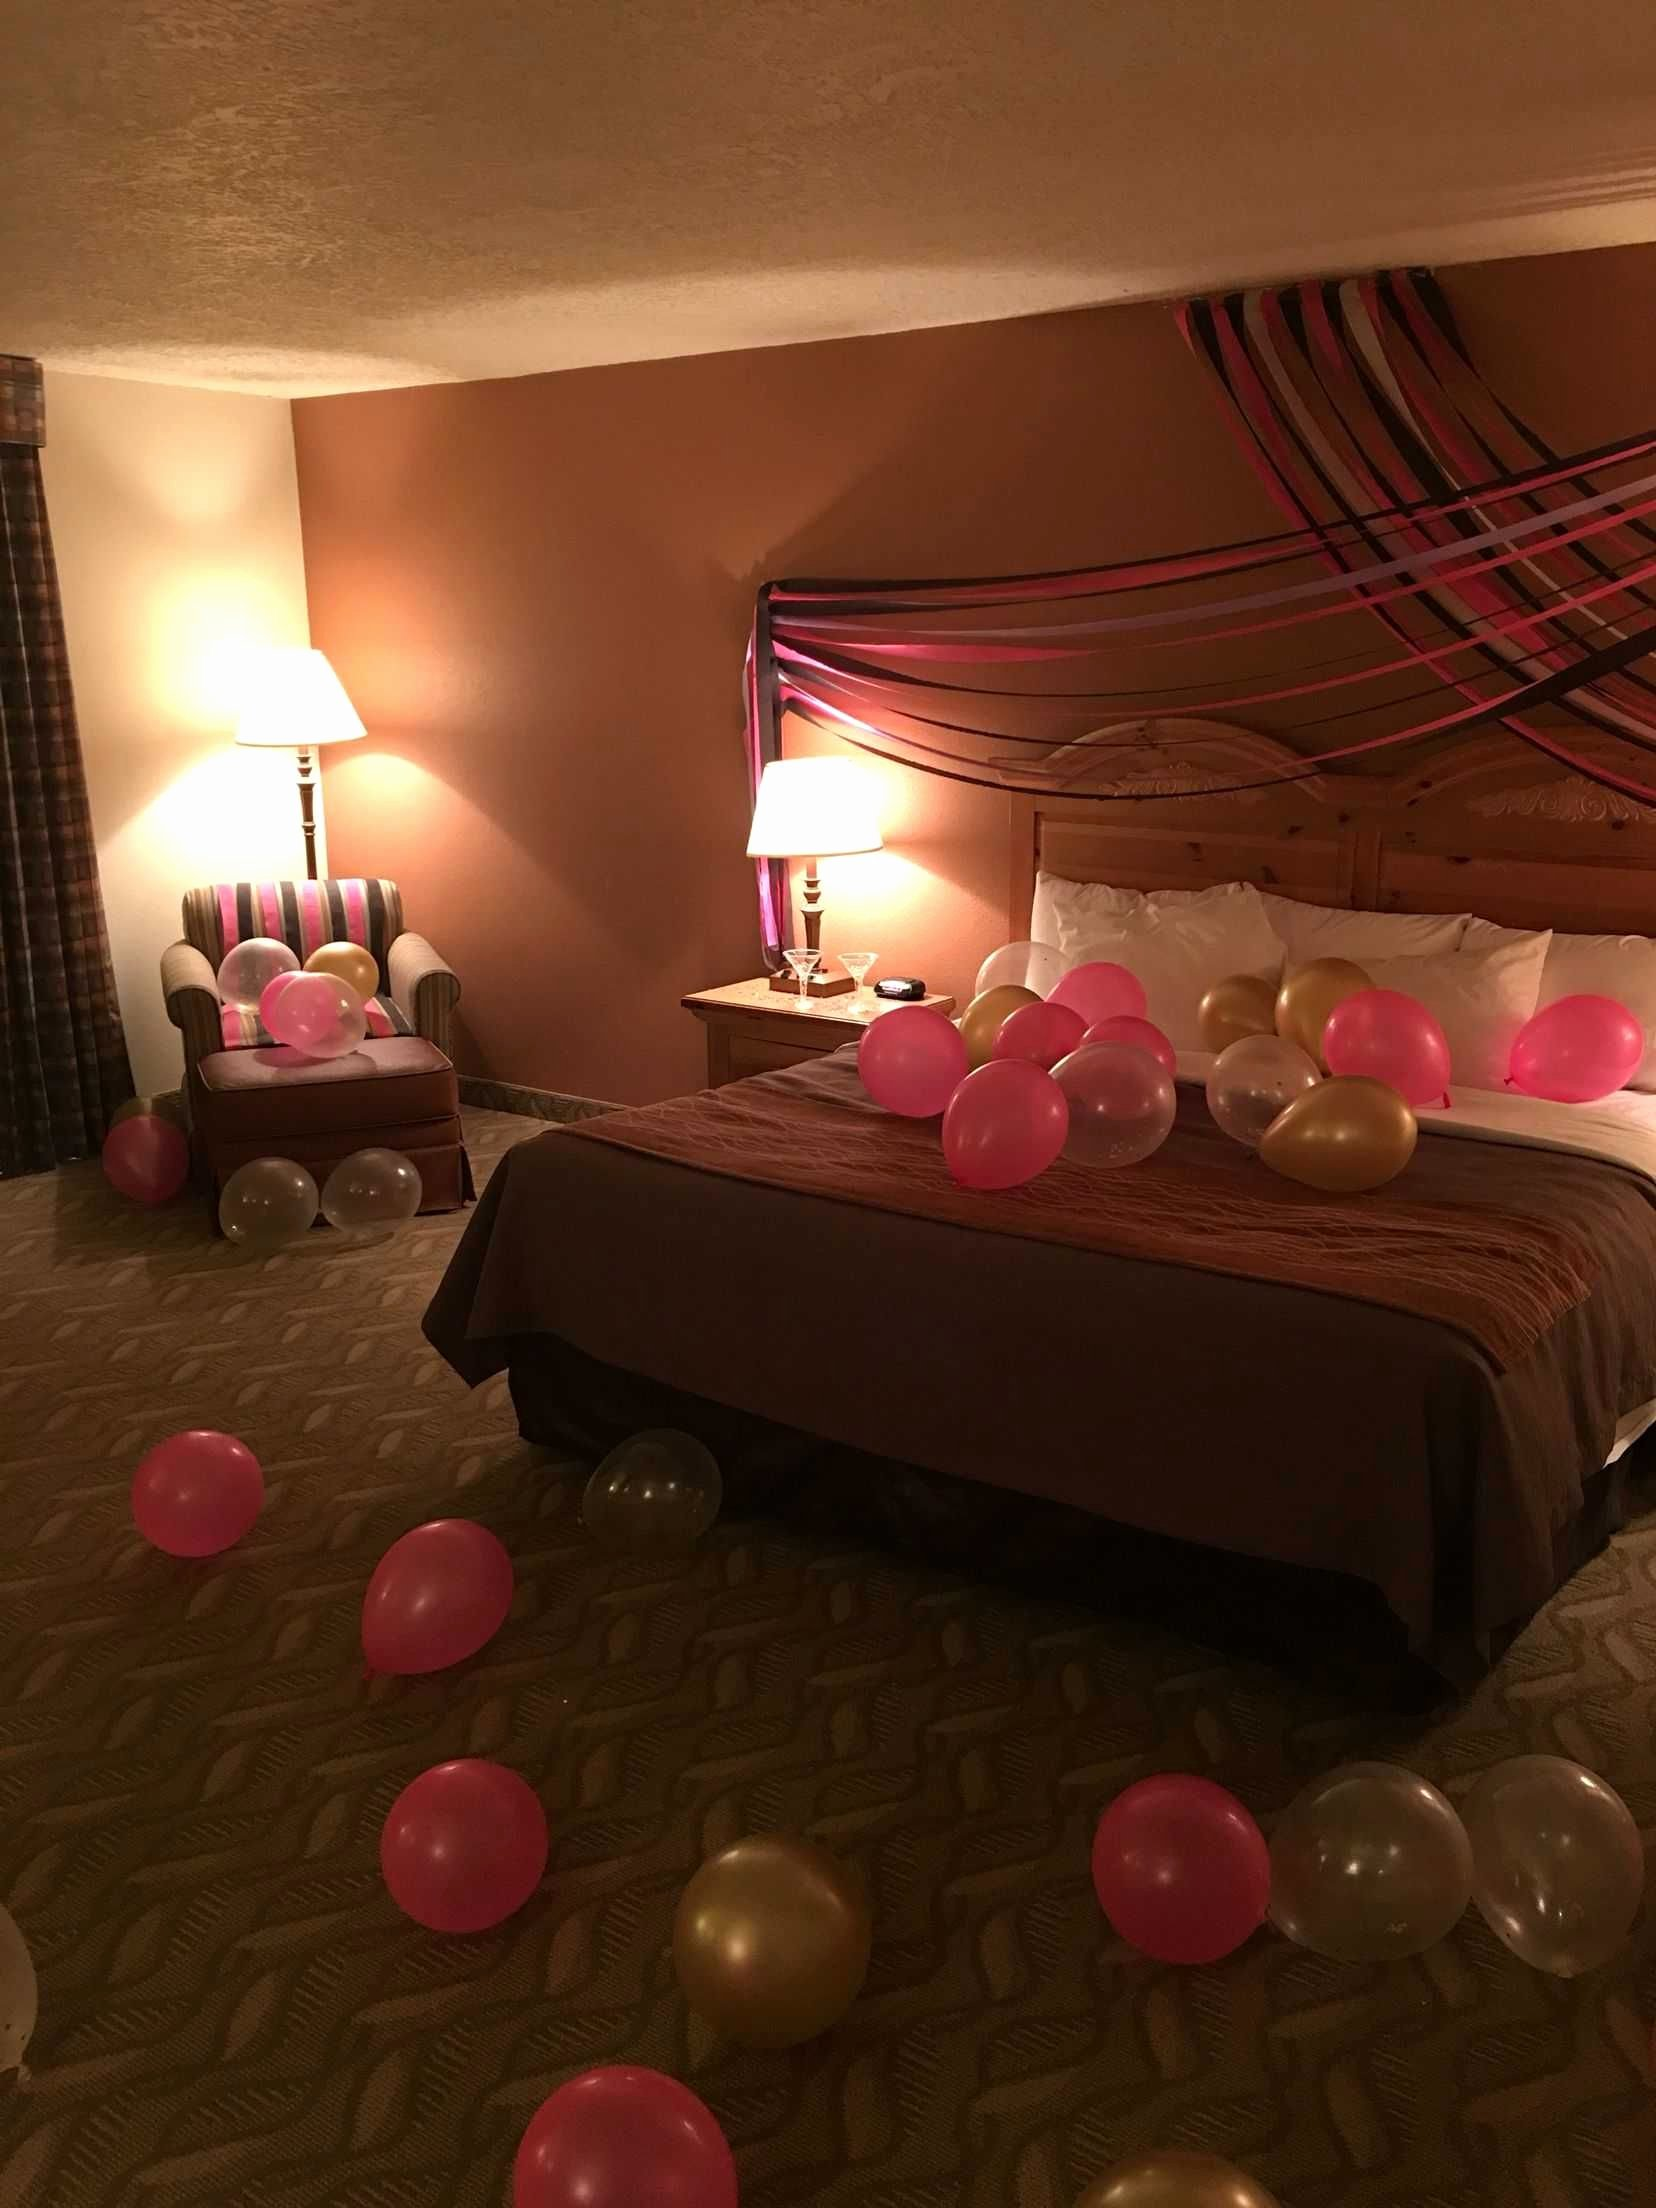 Bedroom Birthday Decoration Ideas Inspirational Fresh Decorate Bedroom for Teenagers